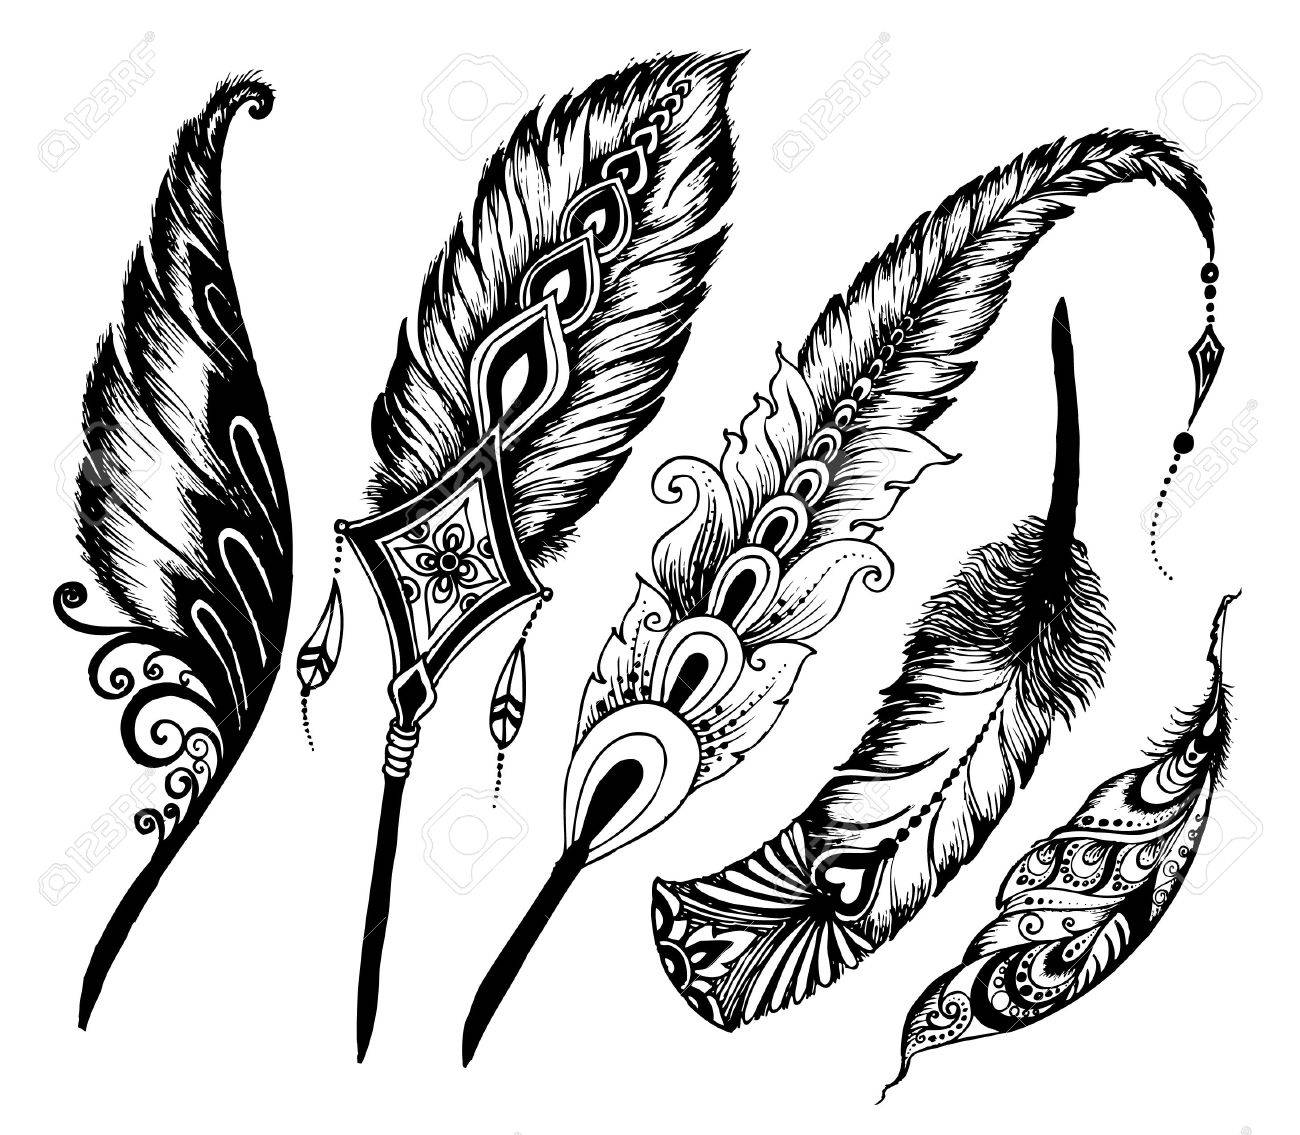 Hand drawn feathers set on white background. doodle vector Set of ethnic feathers. - 58683931